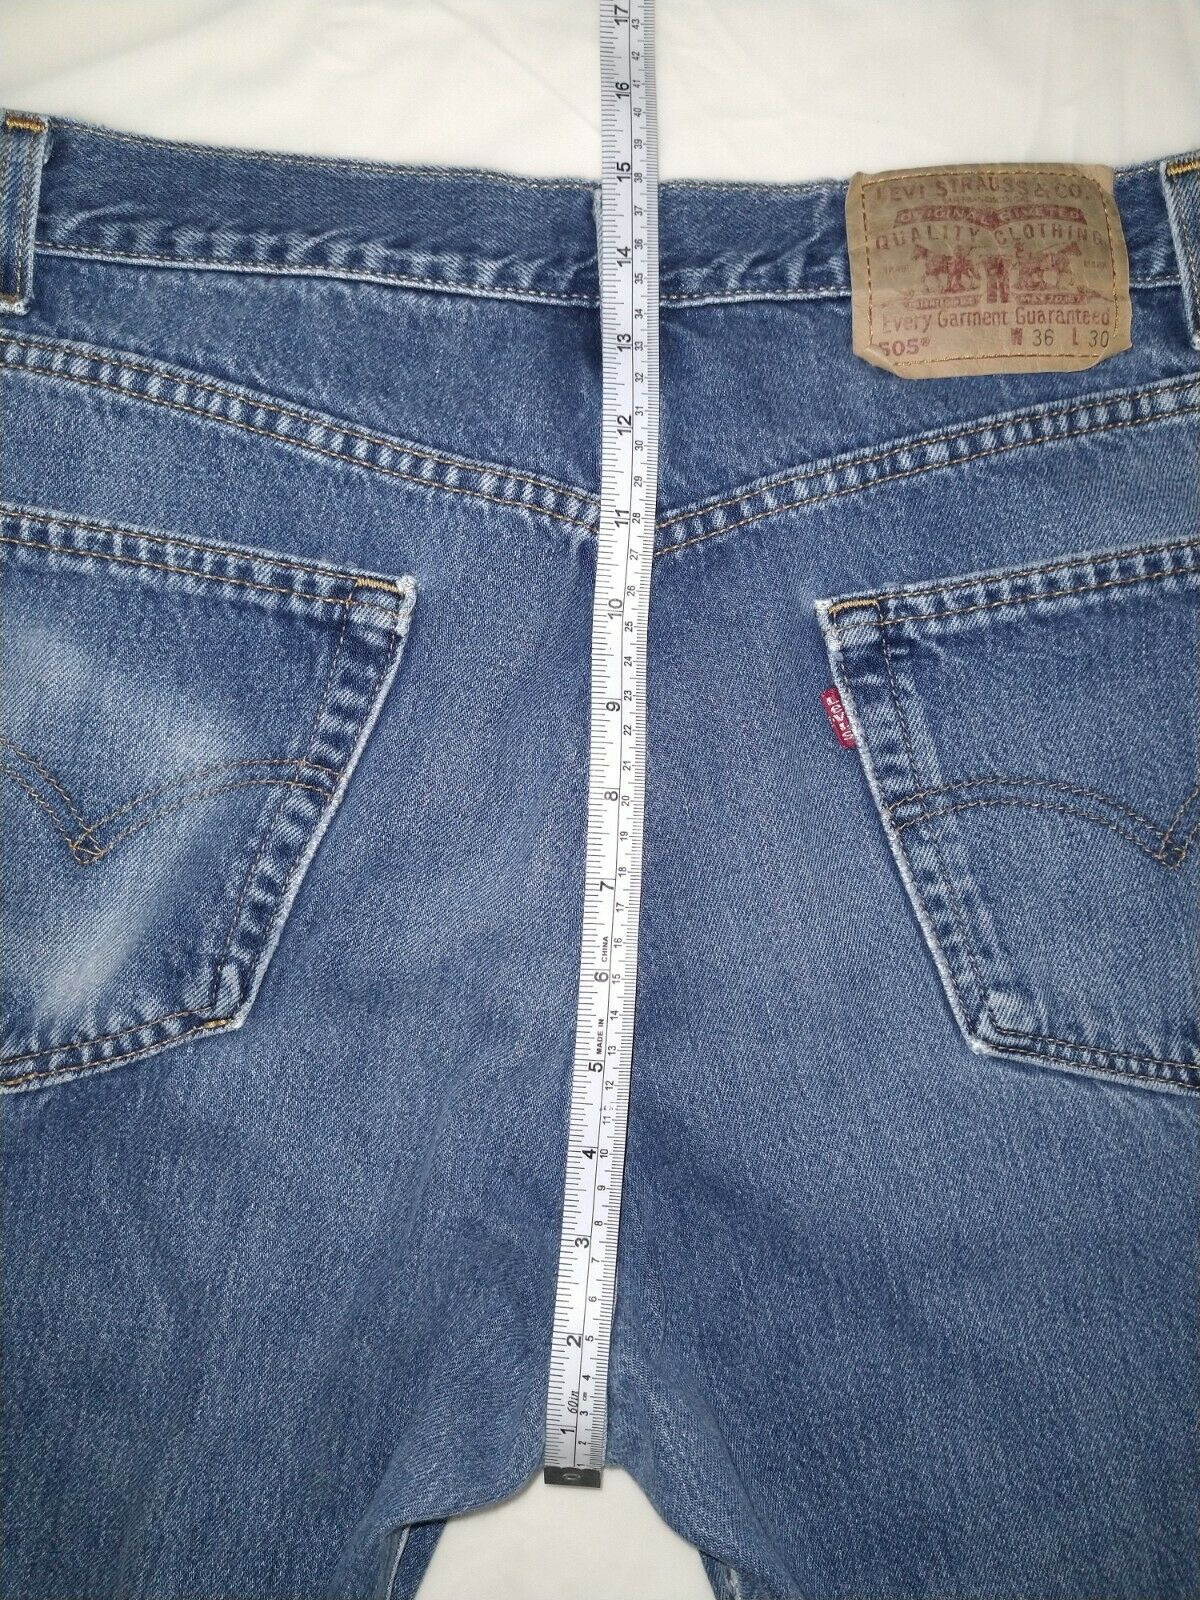 Levi's 505 Jean's Made in the USA Men's size 36x3… - image 6